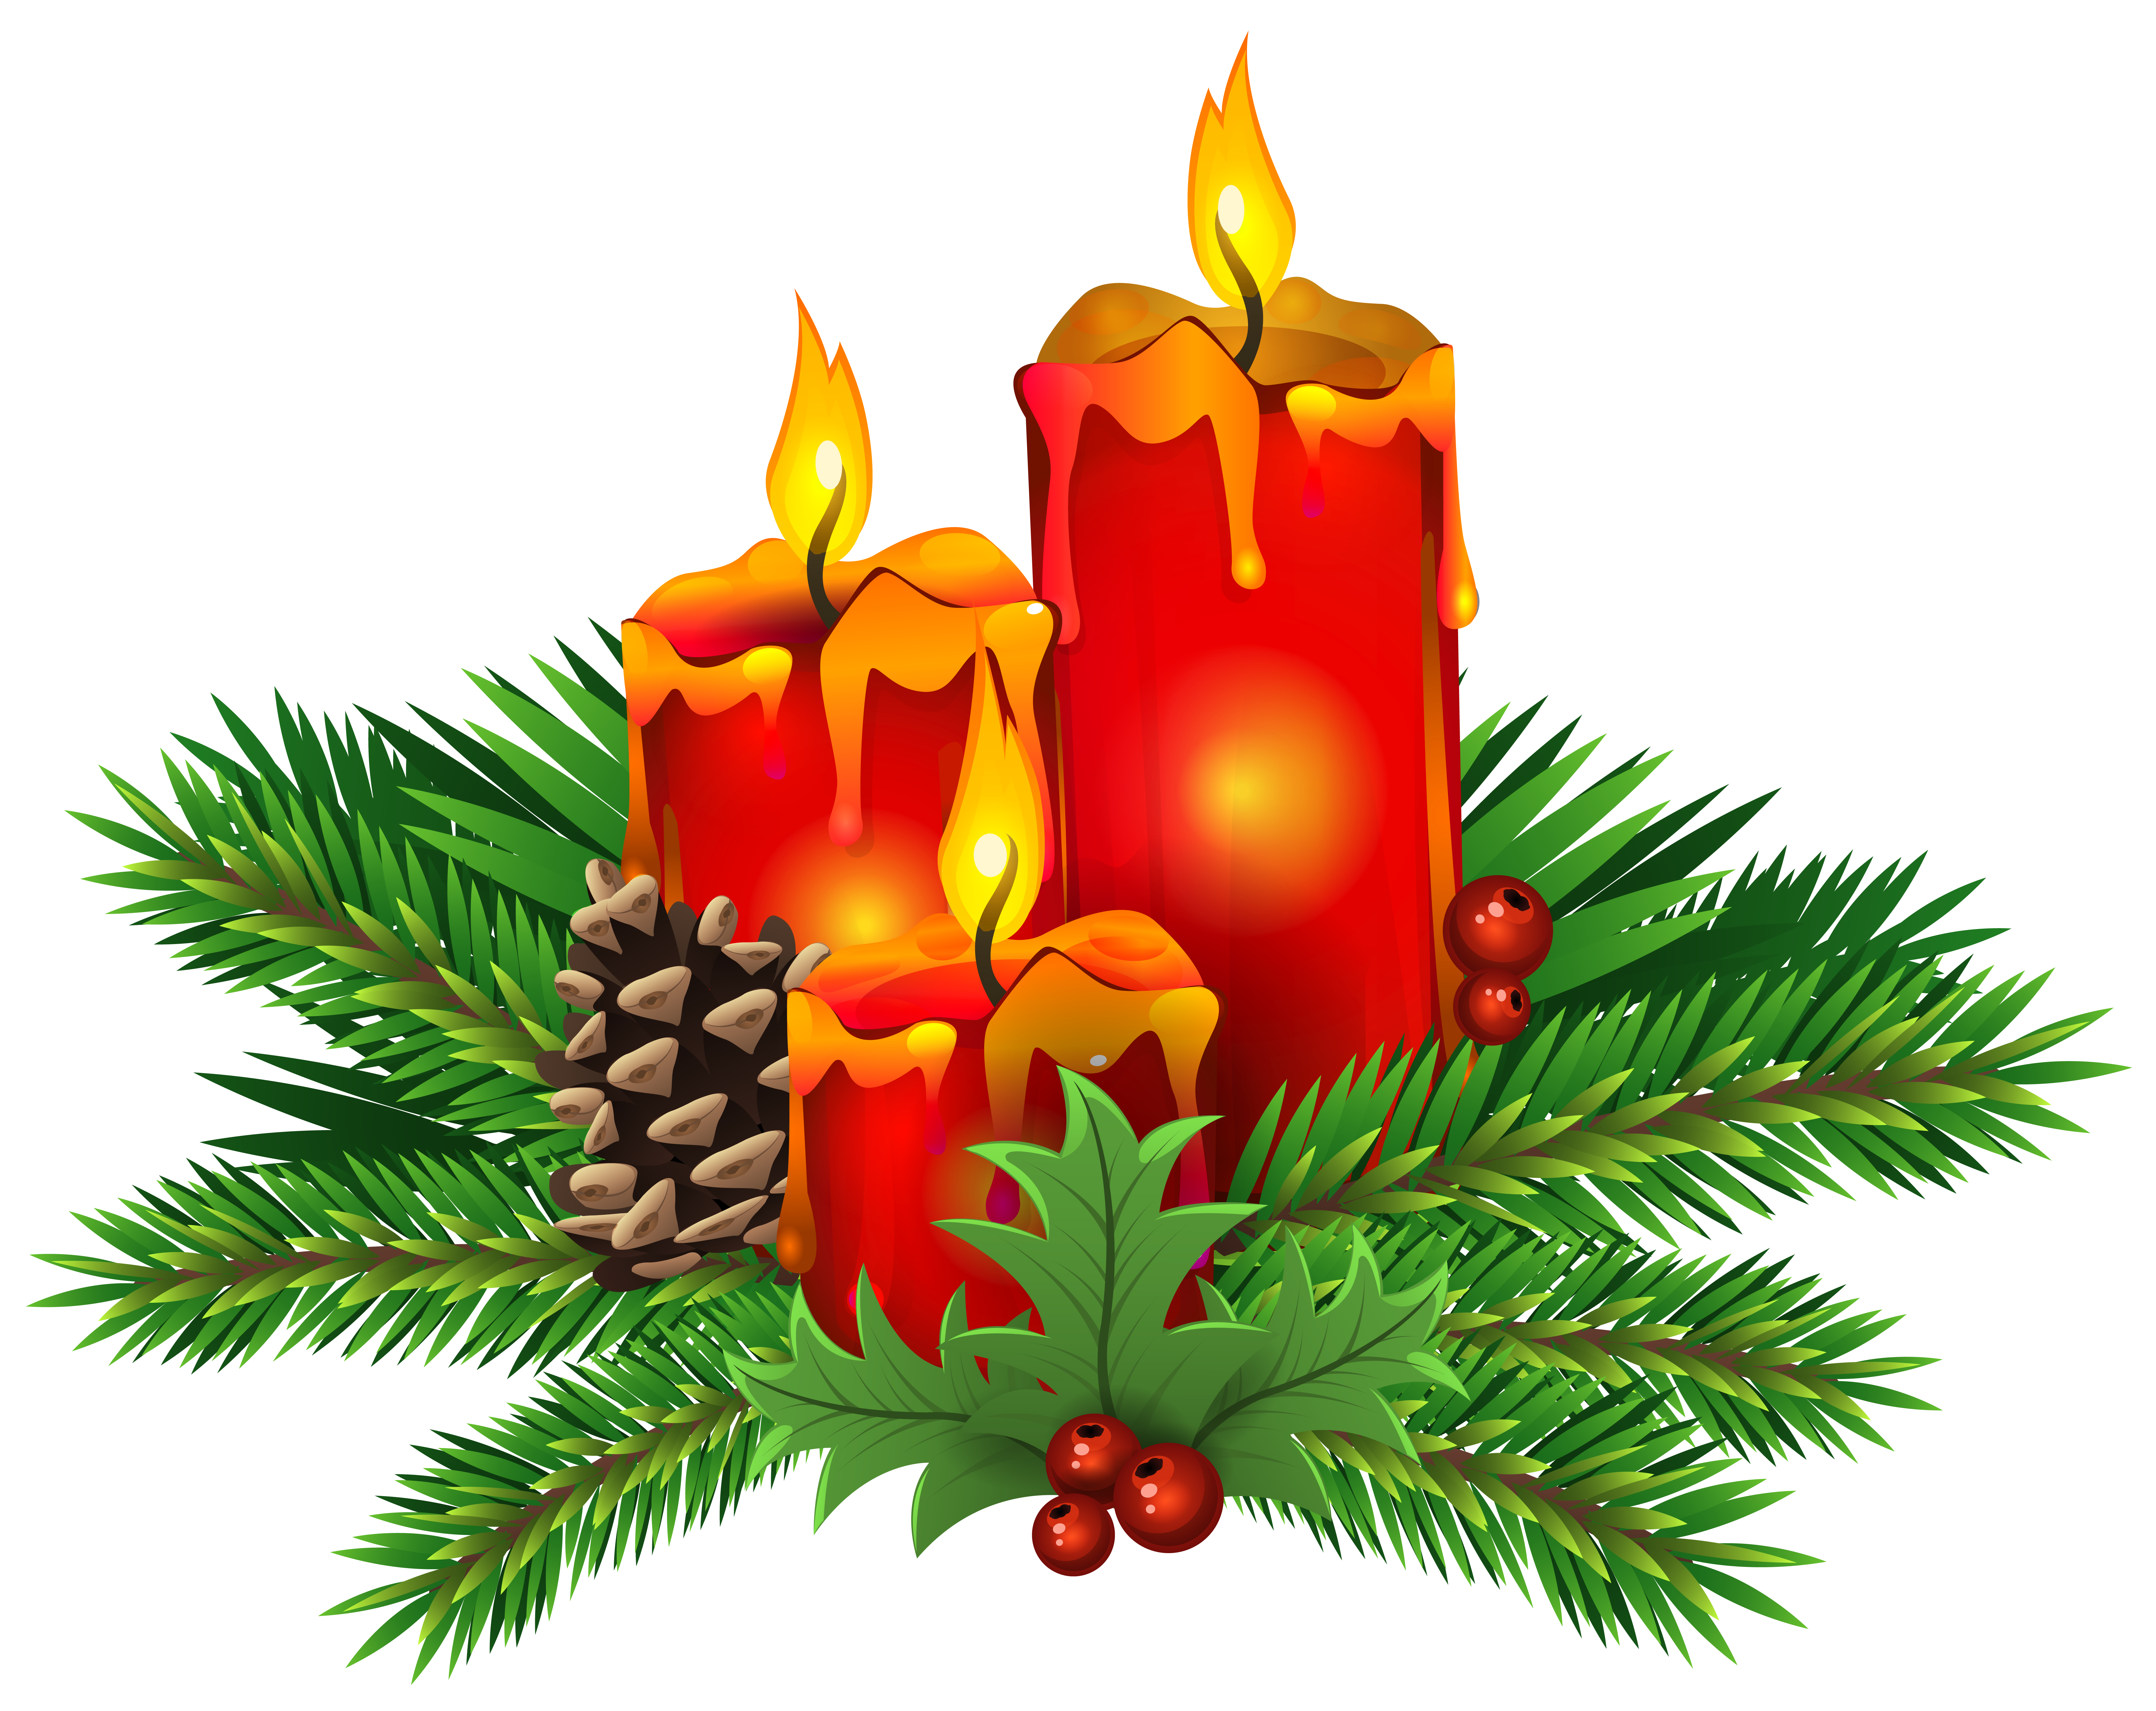 Christmas candle png. Candles clip art image